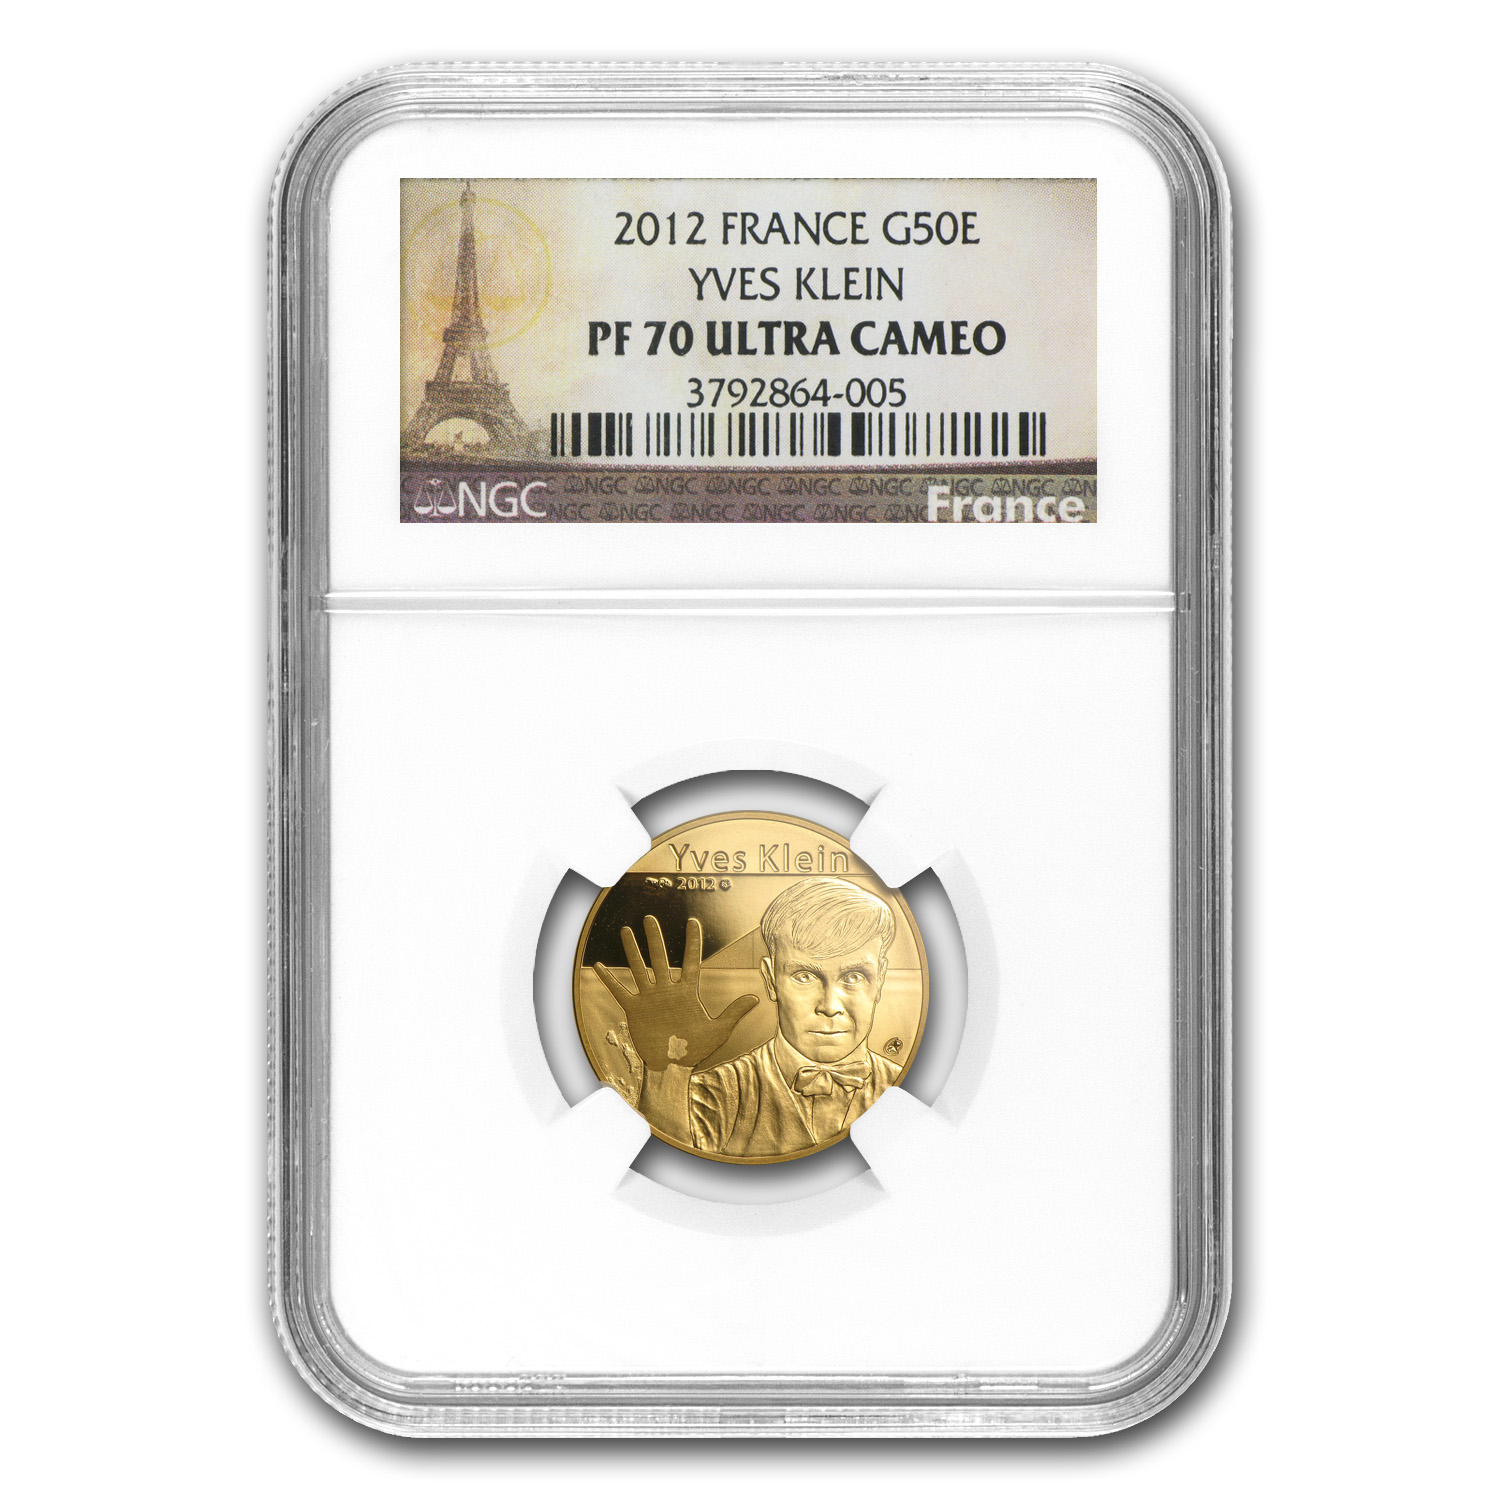 2012 France 1/4 oz Proof Gold Yves Klein PF-70 NGC